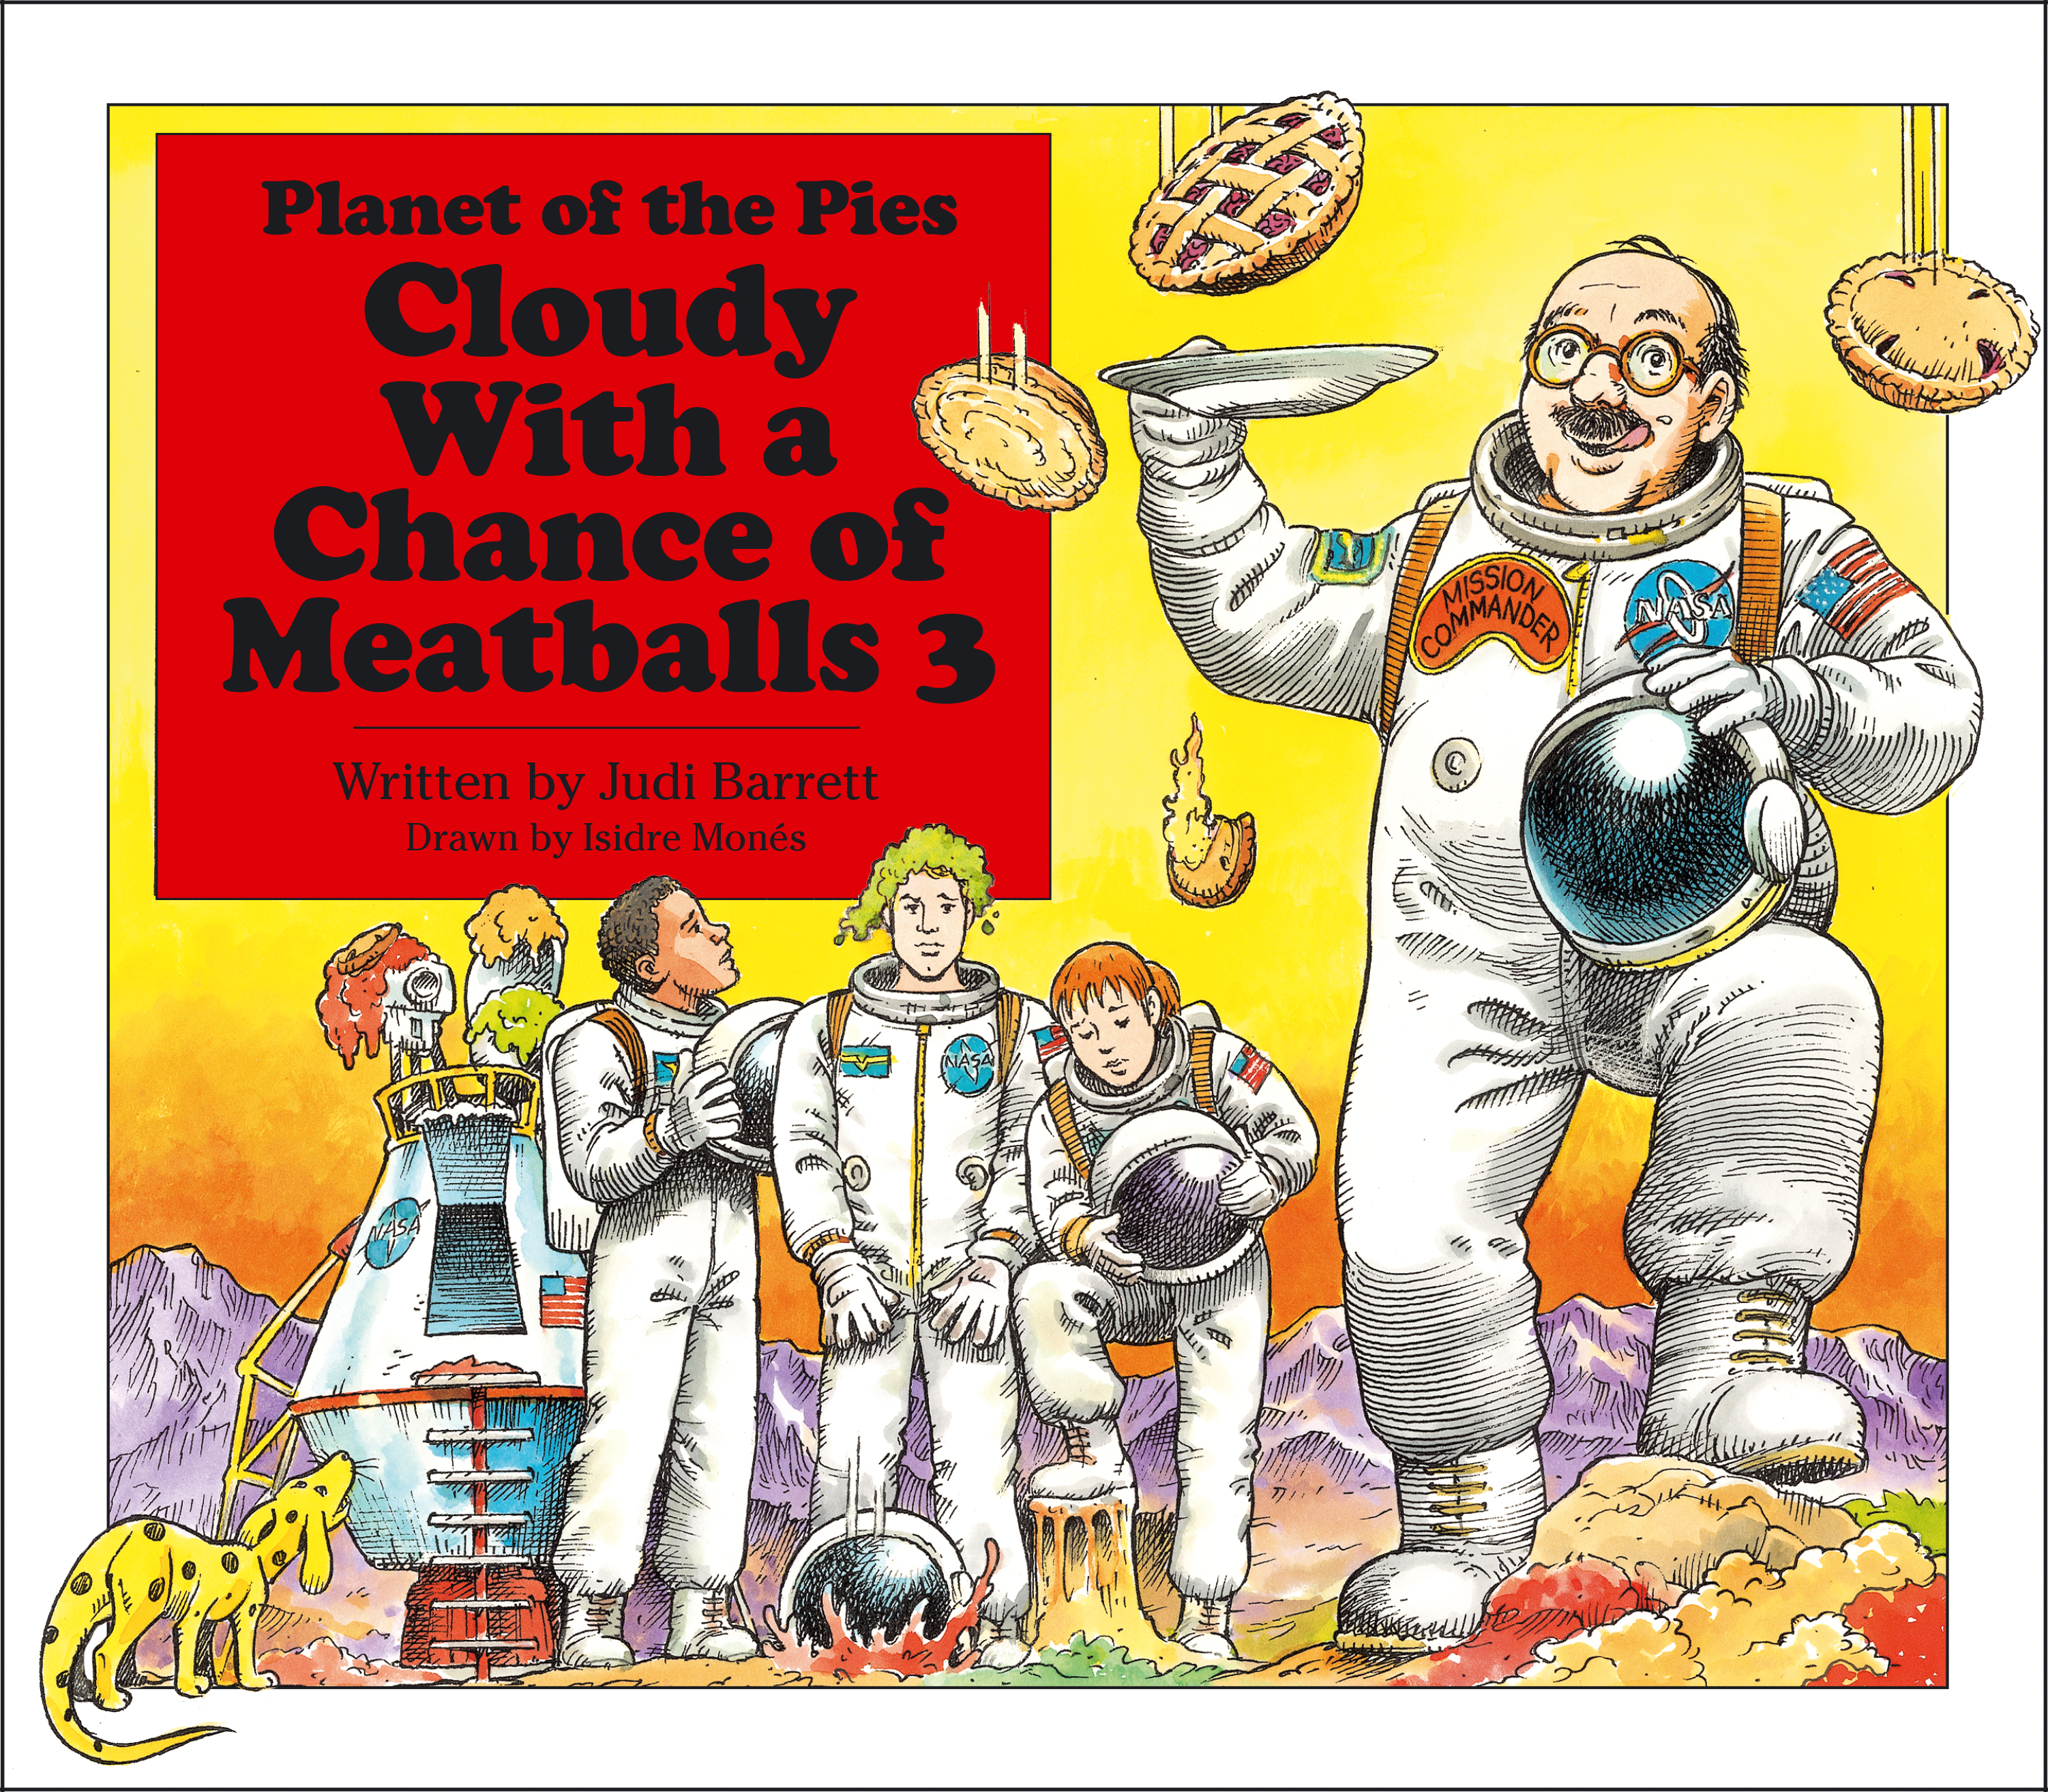 cloudy with a chance of meatballs 3 | bookjudi barrett, isidre